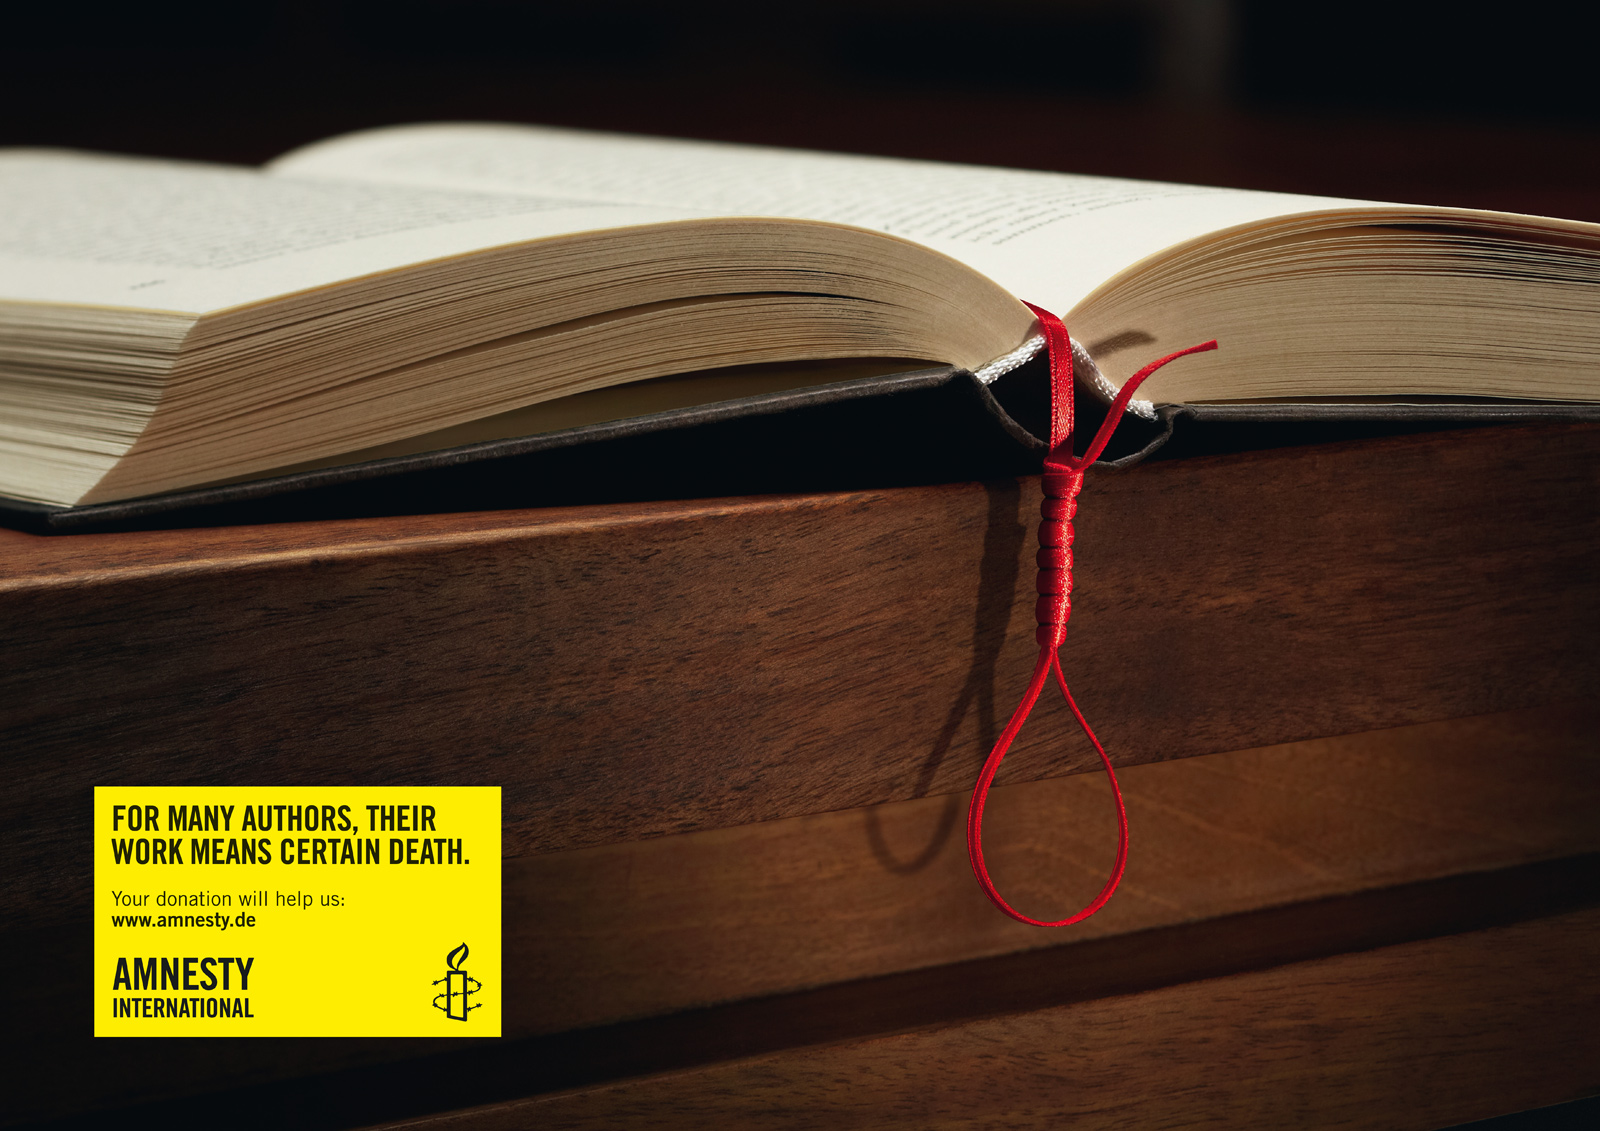 Souvent Amnesty International Print Advert By McCann: Gallows | Ads of the  KX28